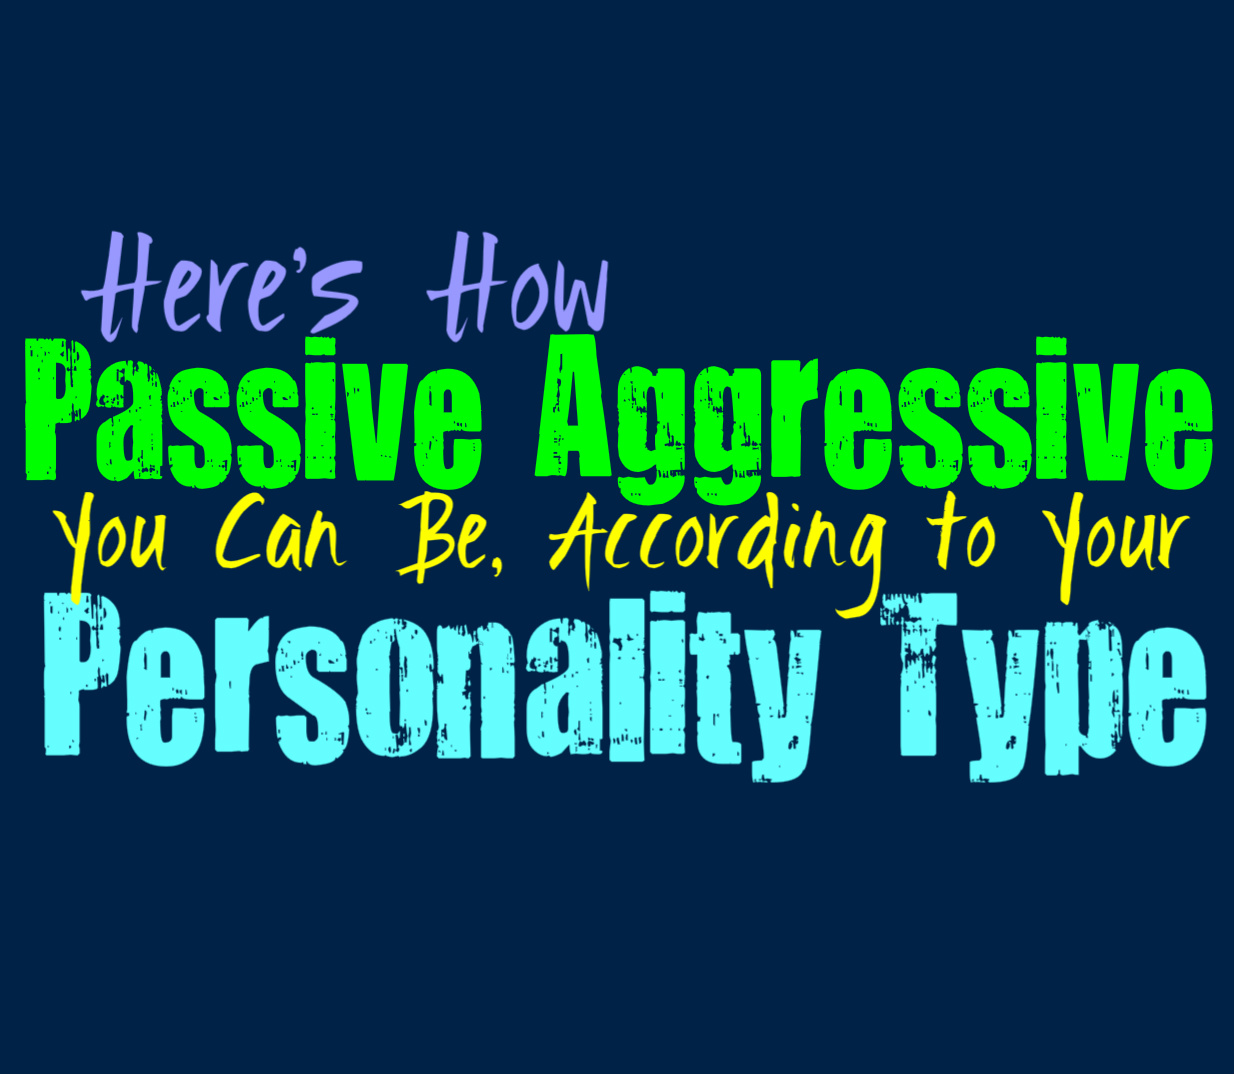 Here's How Passive Aggressive You Can Be, According to Your